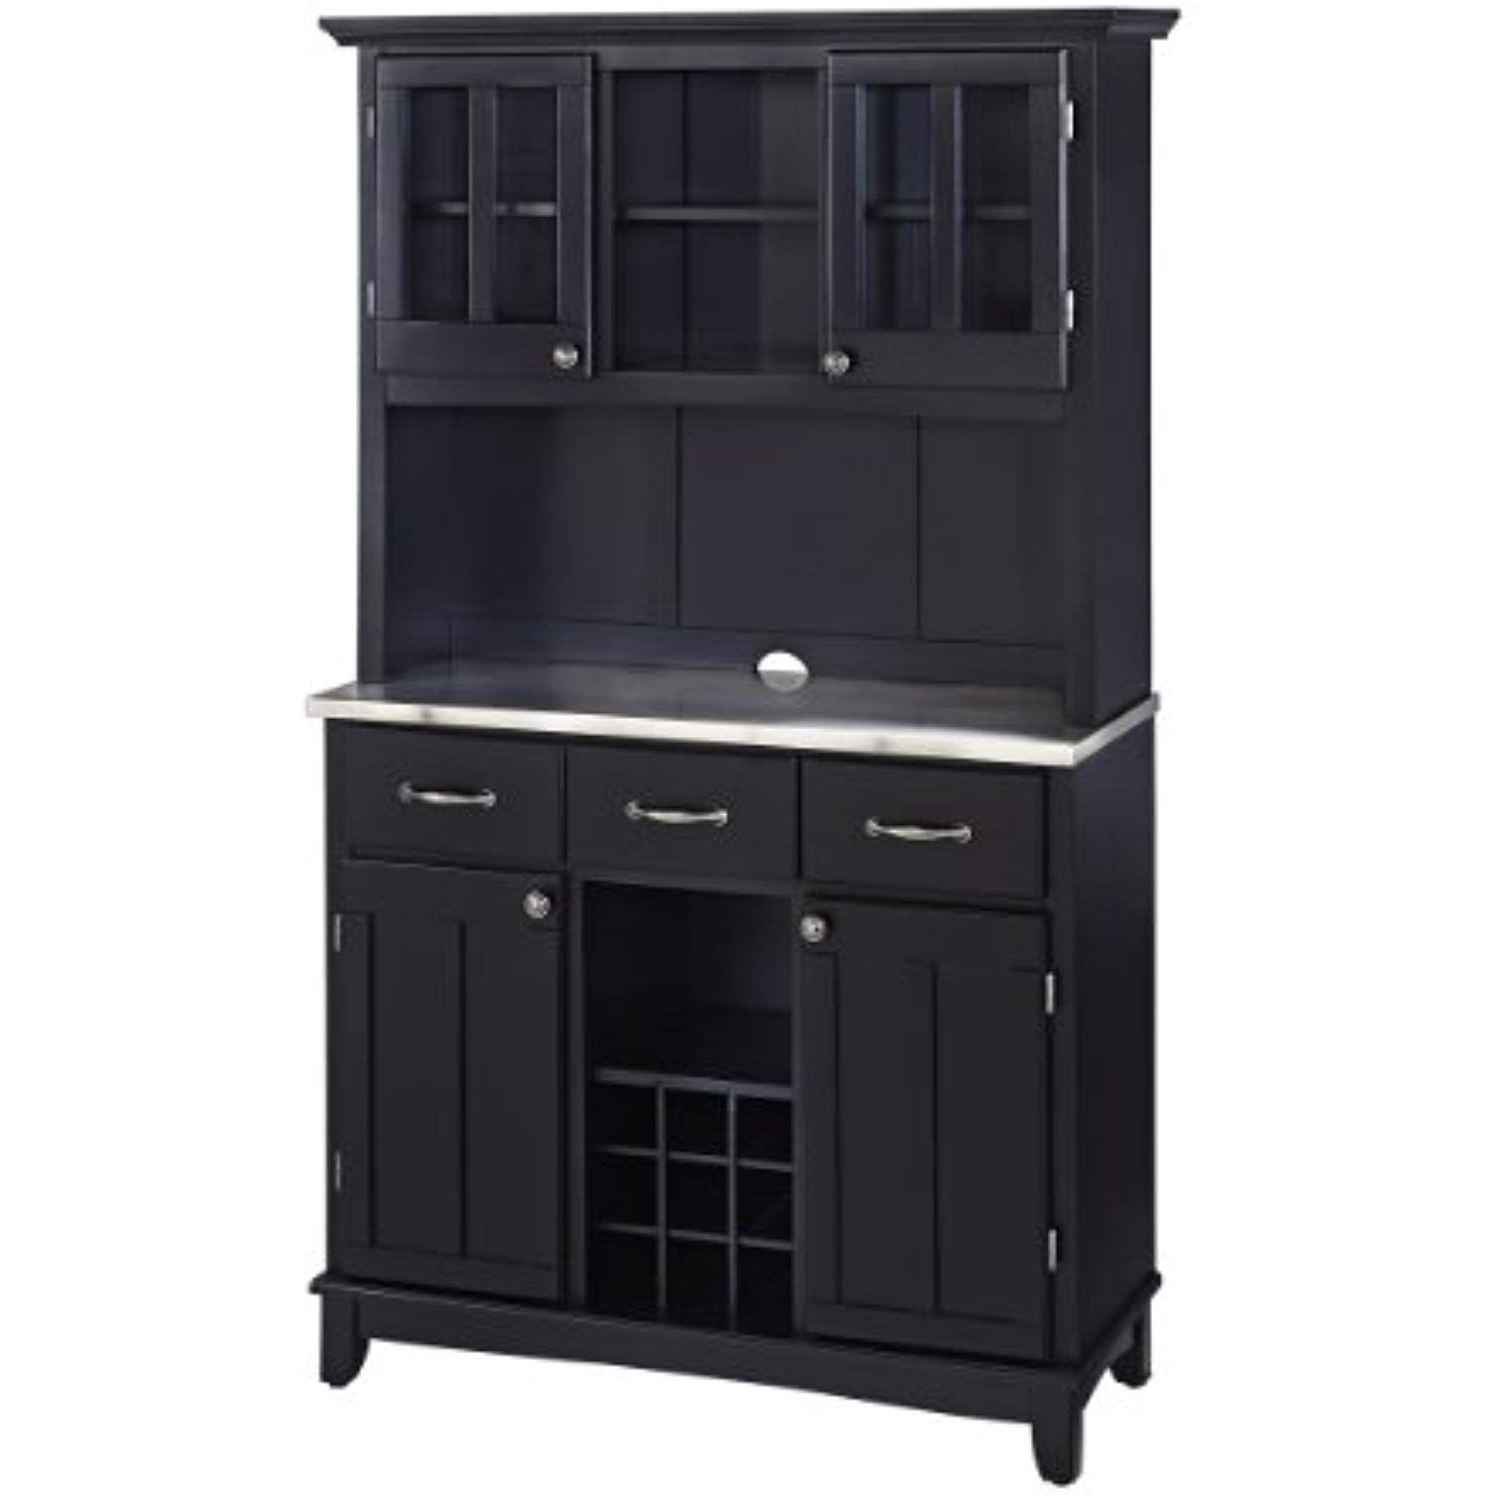 Home Styles 5100 0043 42 Buffet Of Buffets Stainless Steel Within Black Hutch Buffets With Stainless Top (View 11 of 20)